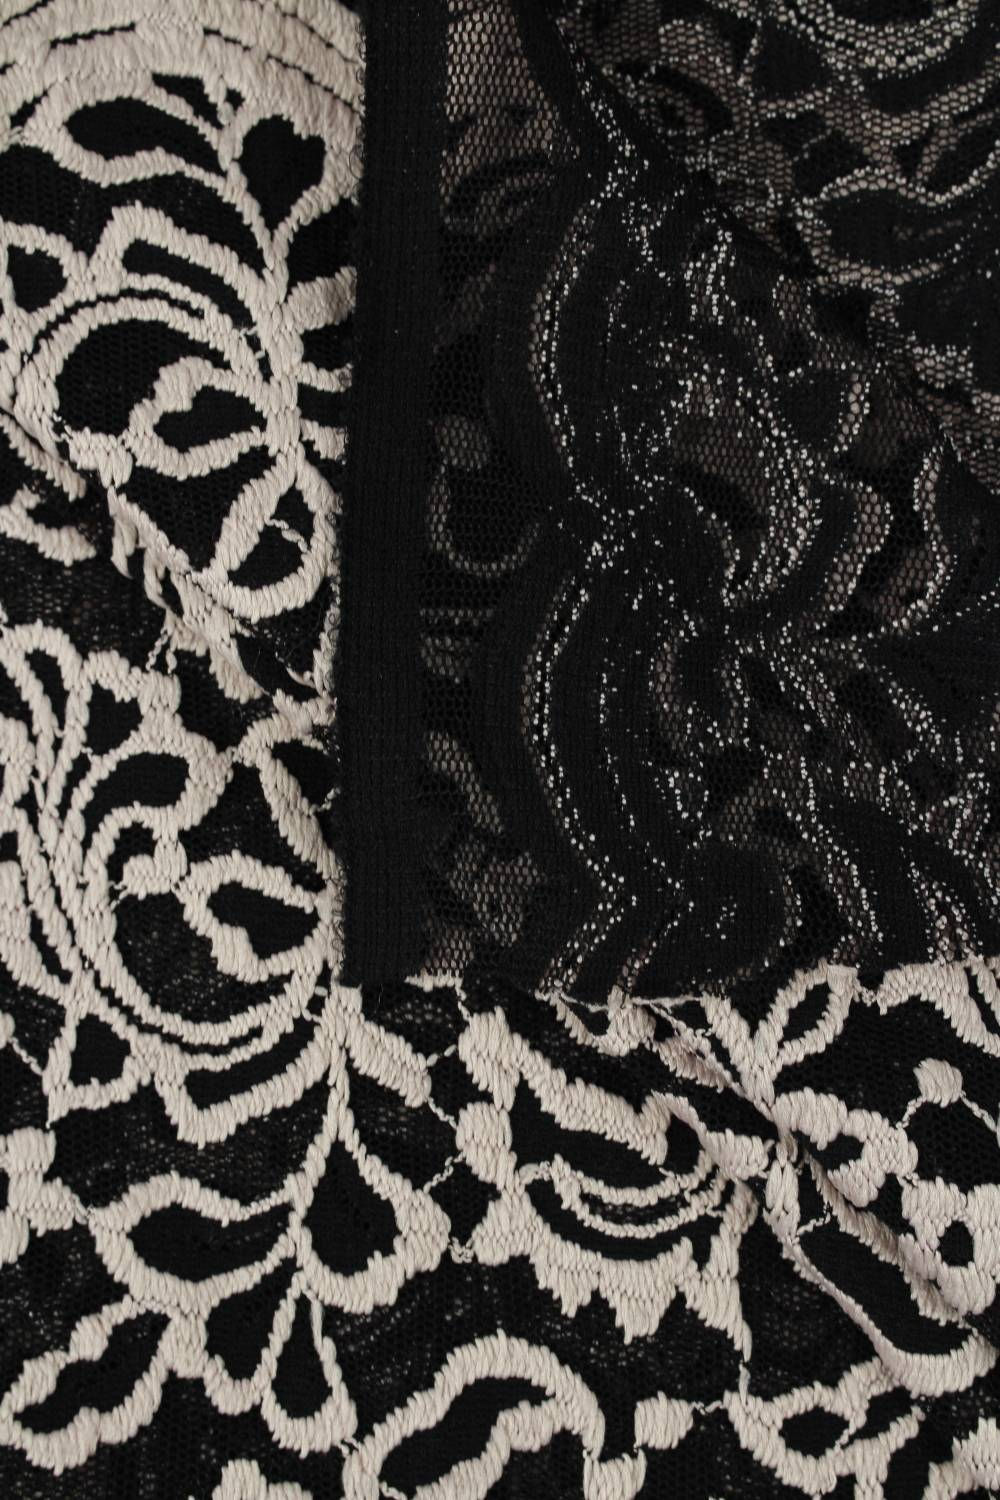 copy of Fabric - Viscose - Black With Pink/White Flowers - 140 cm - 130 g/m2